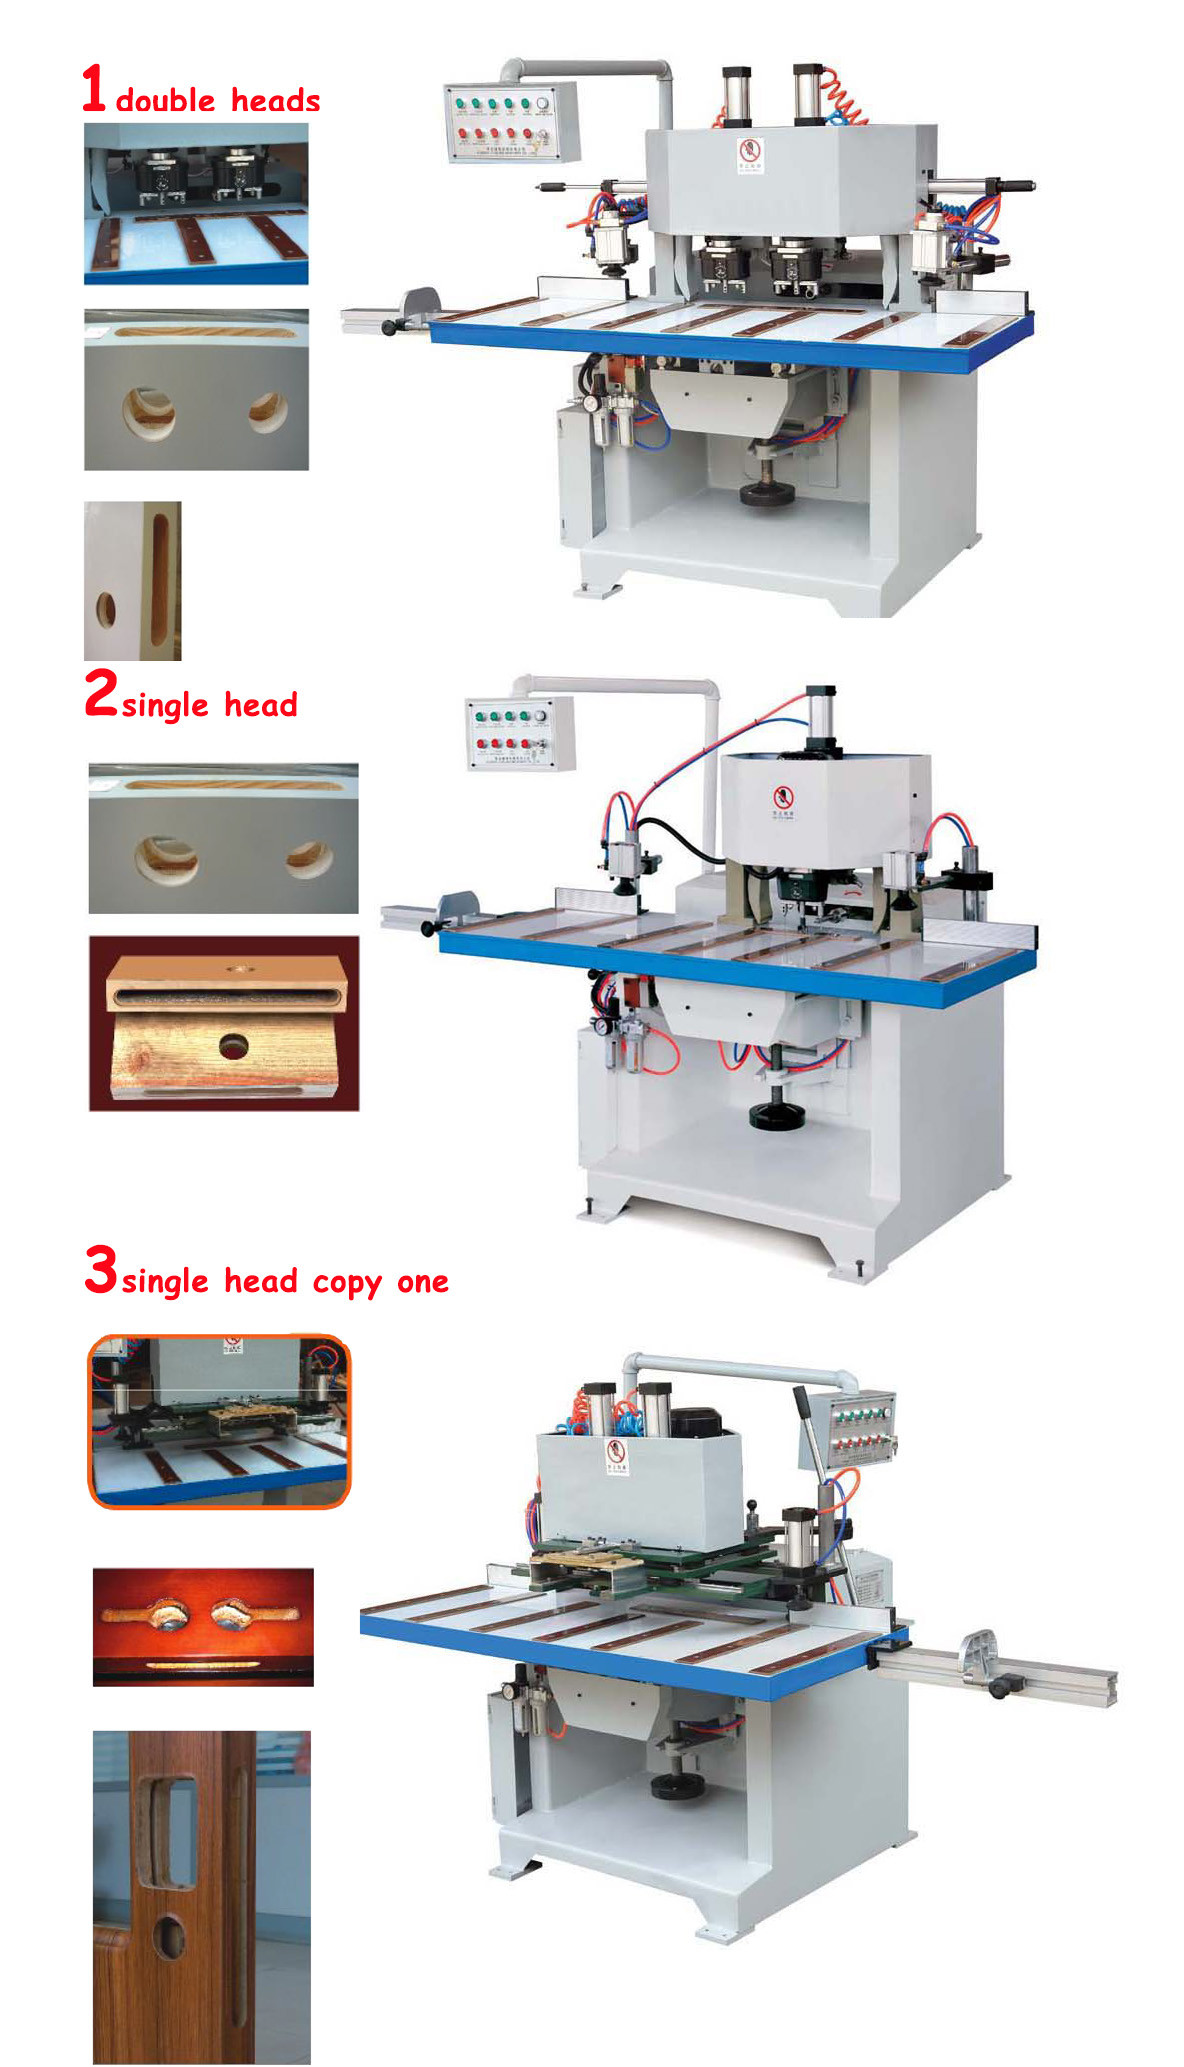 Door lock hole mortise mortising machine with double heads single heads copy heads